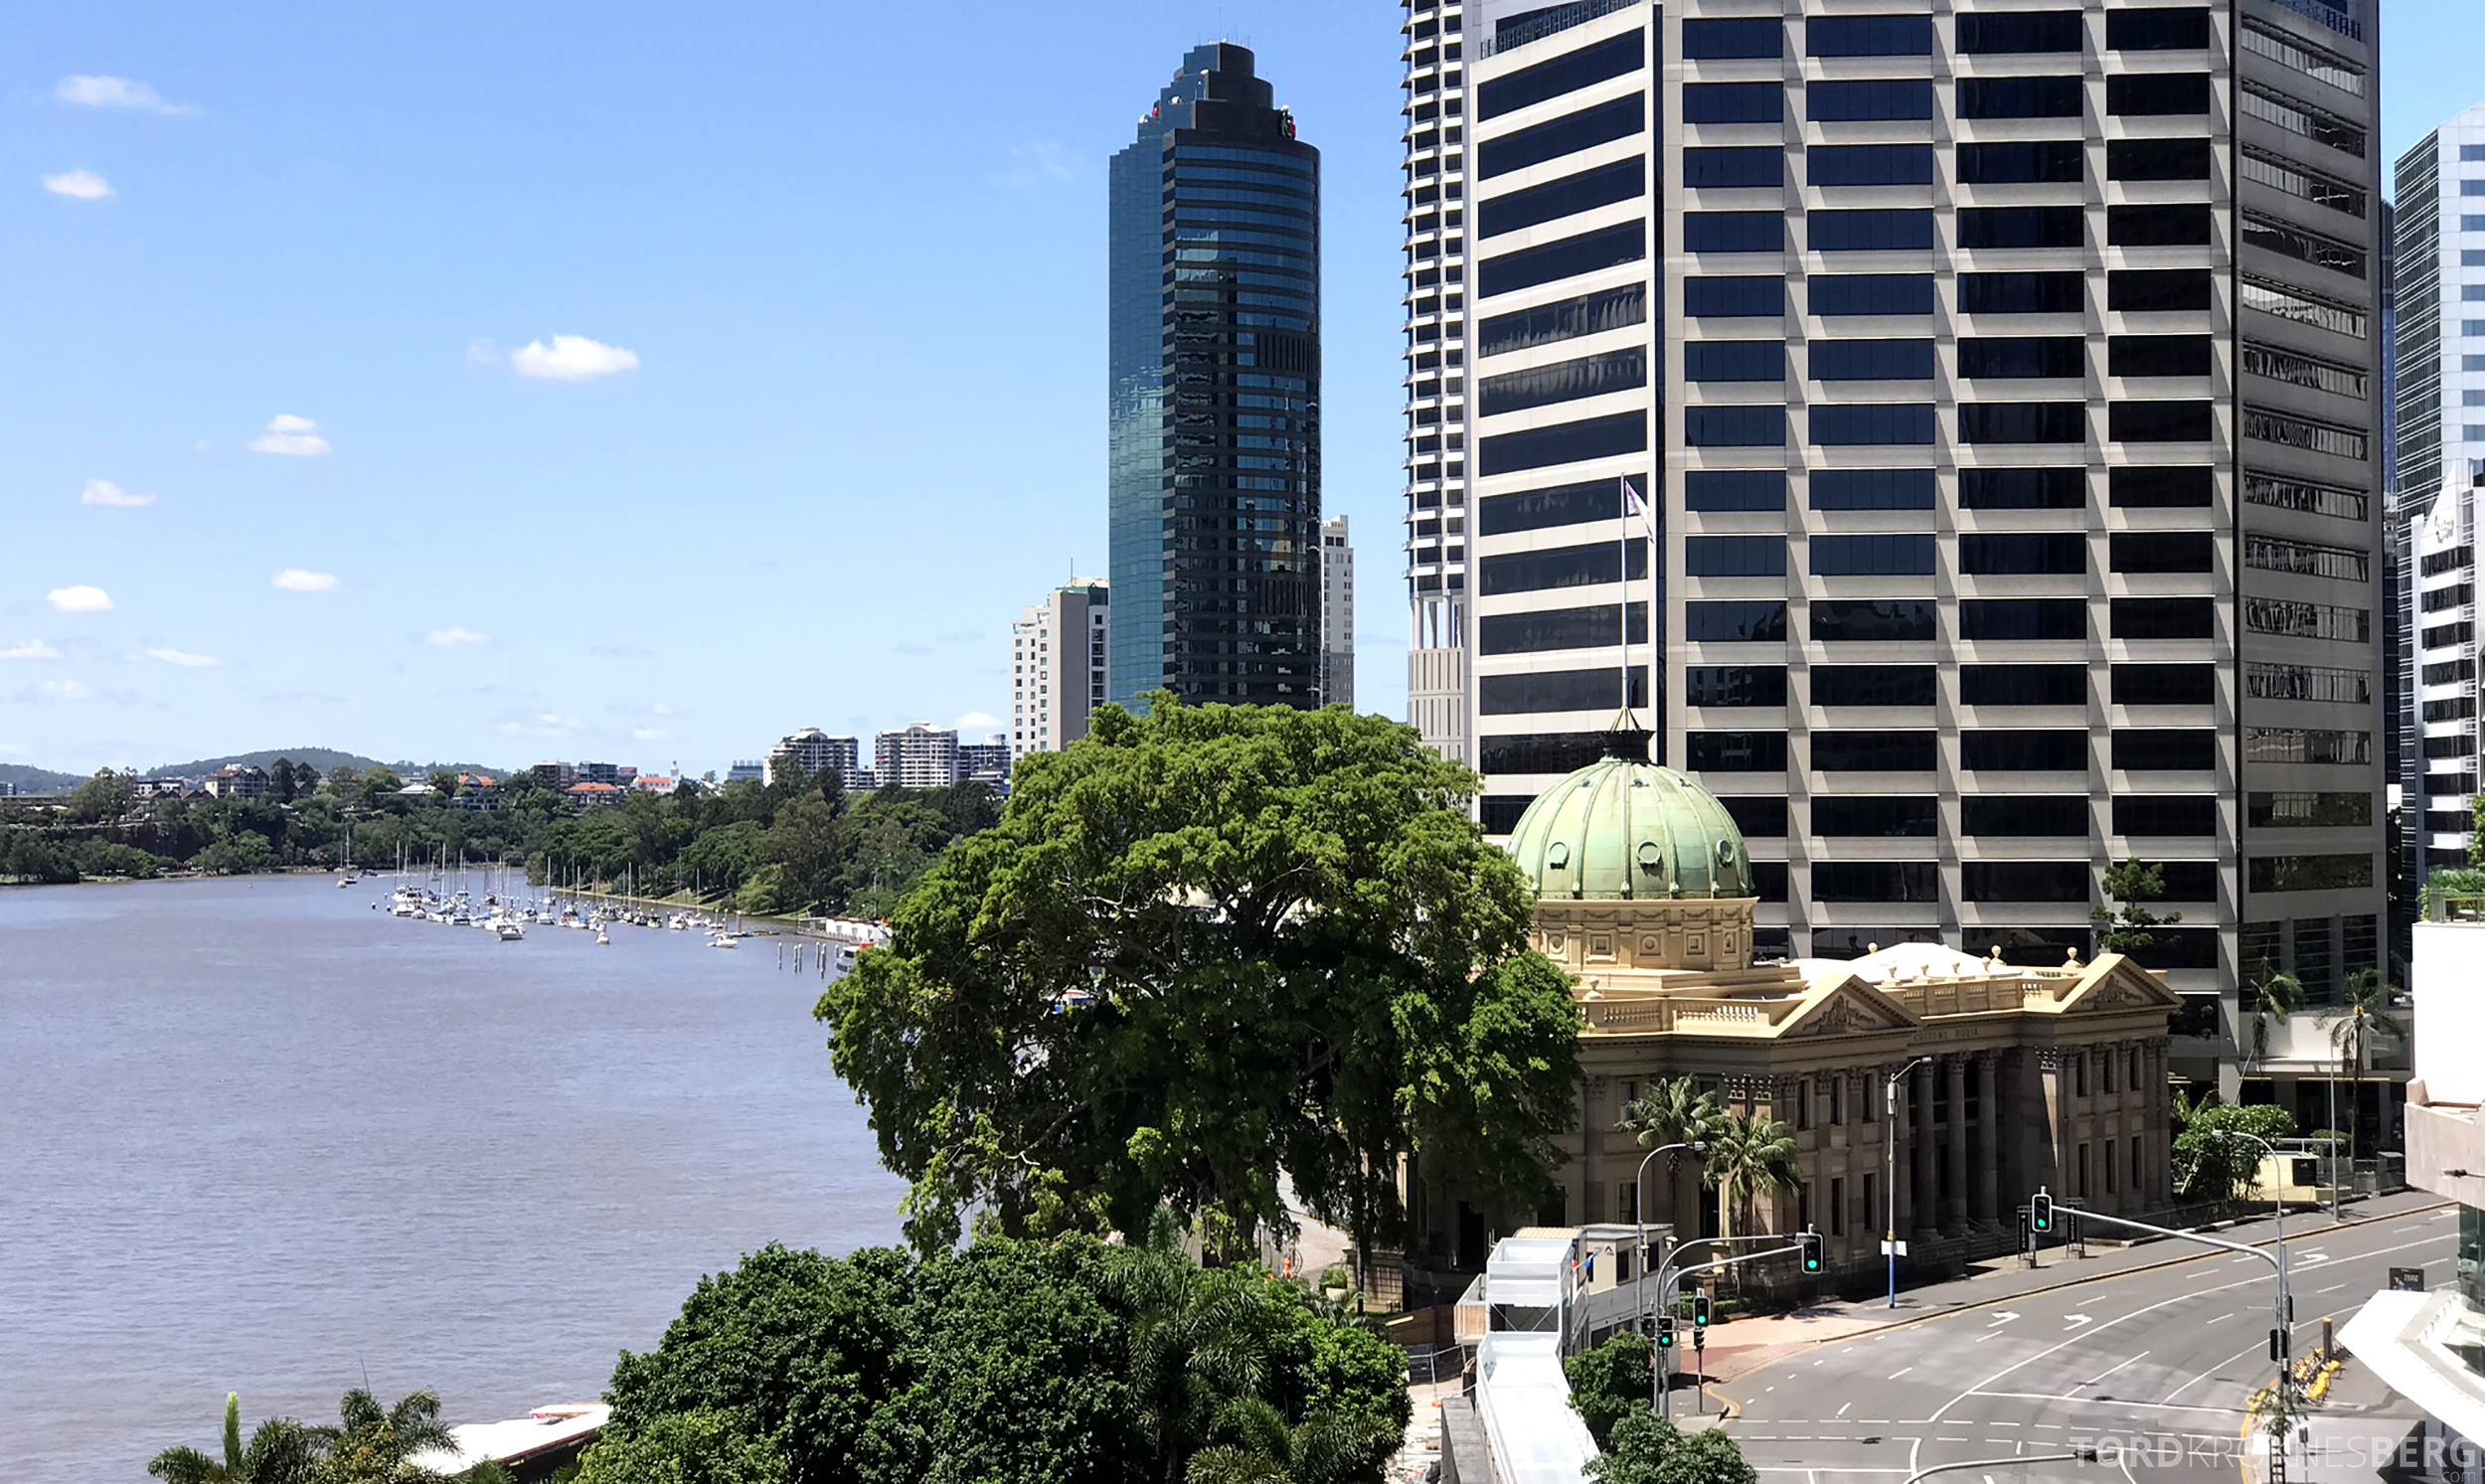 Brisbane Marriott Hotel utsikt